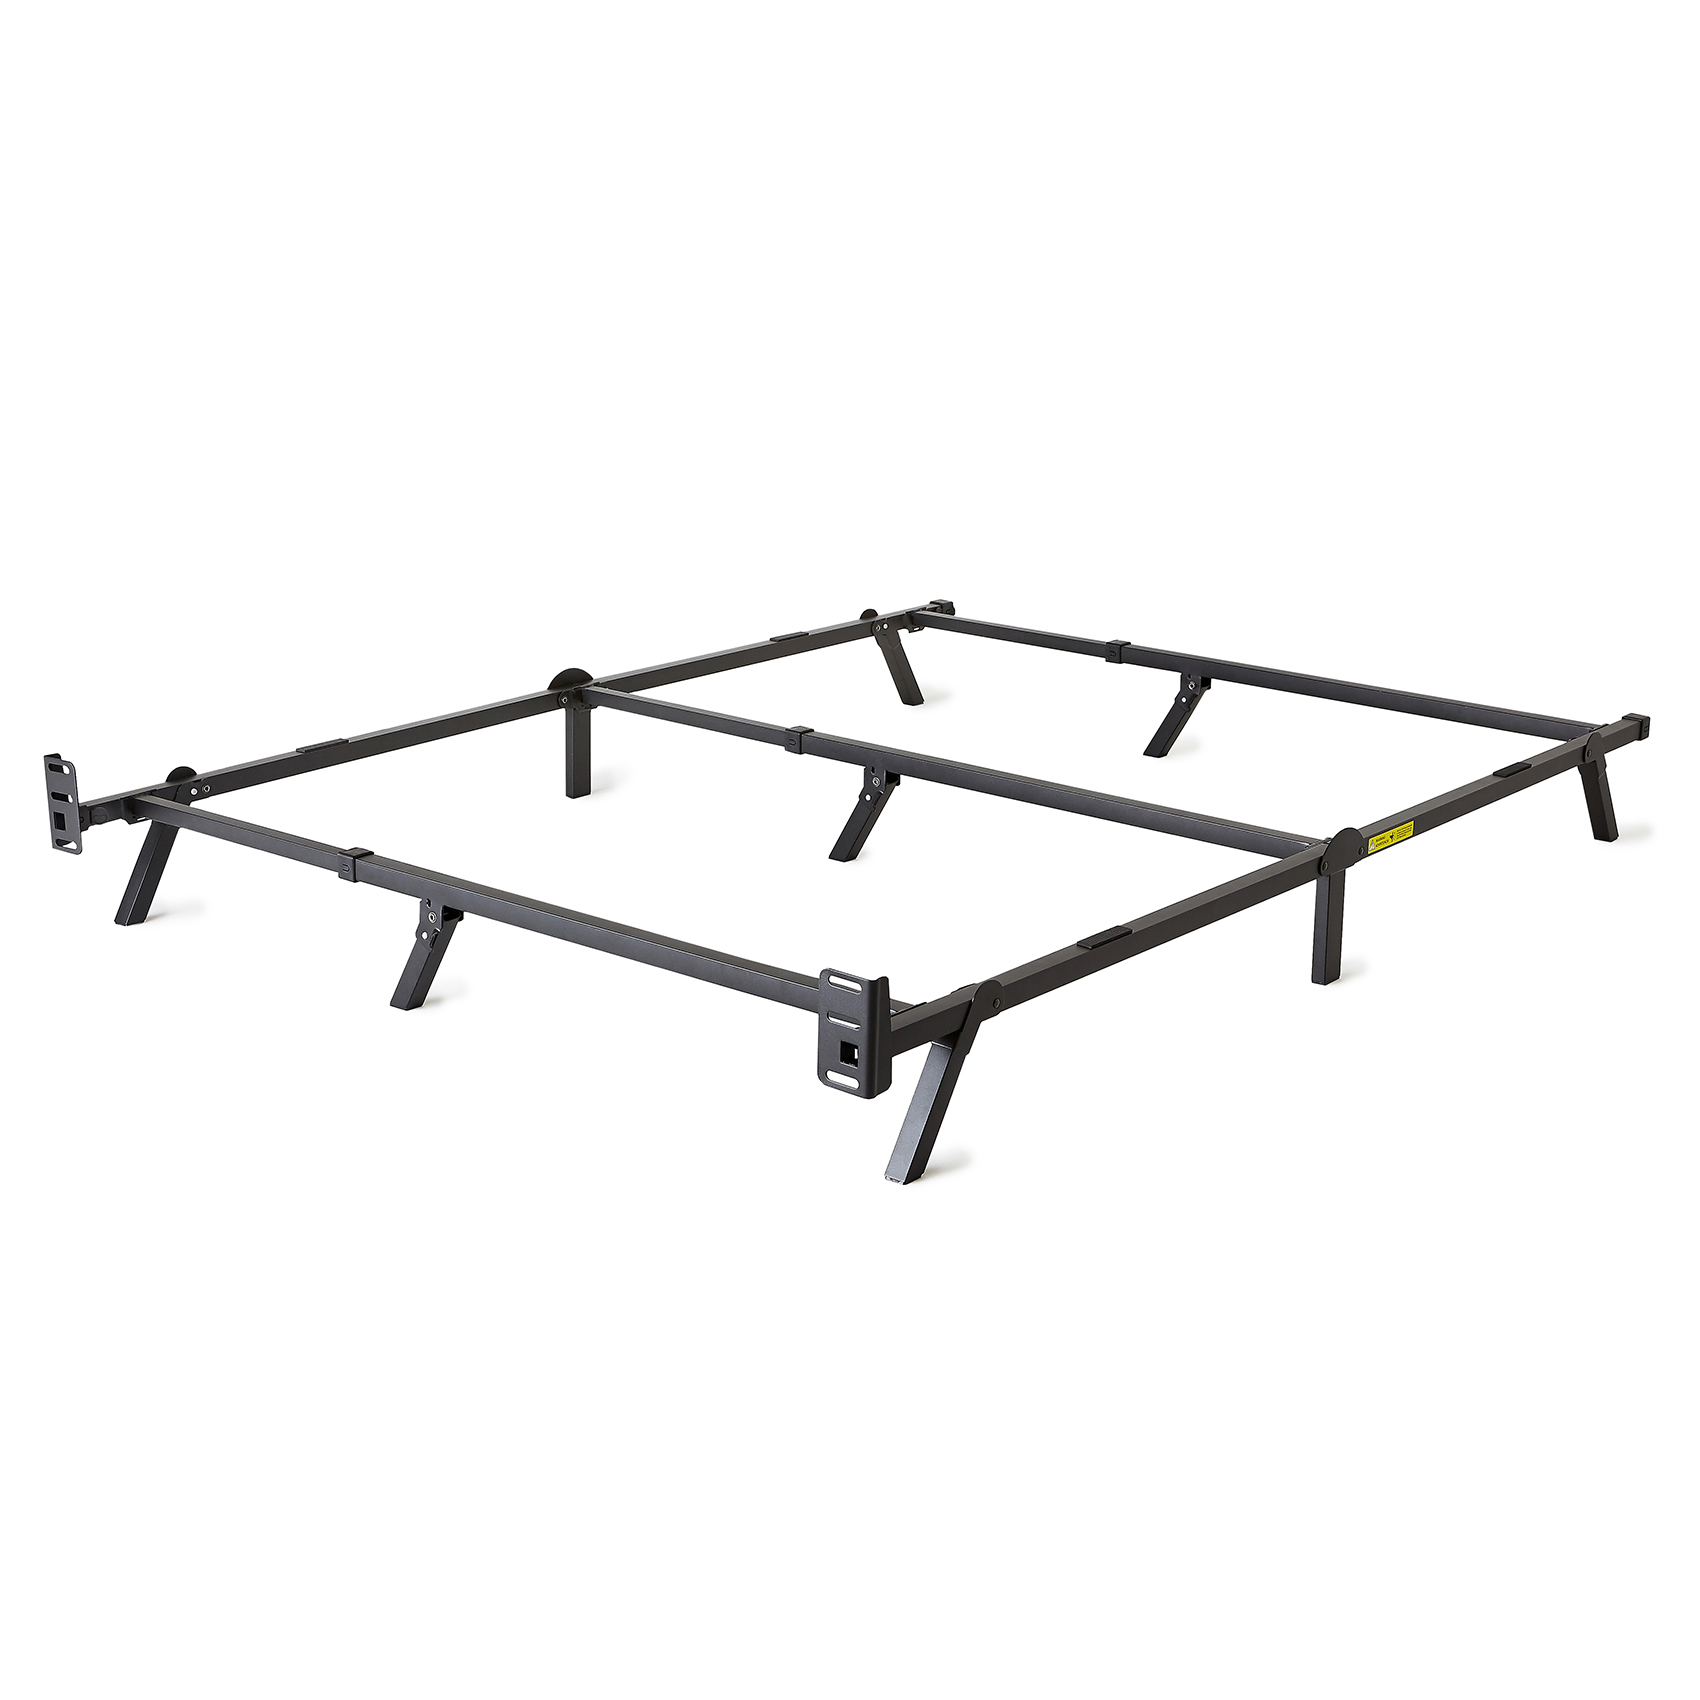 intellibase low profile adjustable twinfullqueen box spring metal bed frame - Adjustable Twin Bed Frame